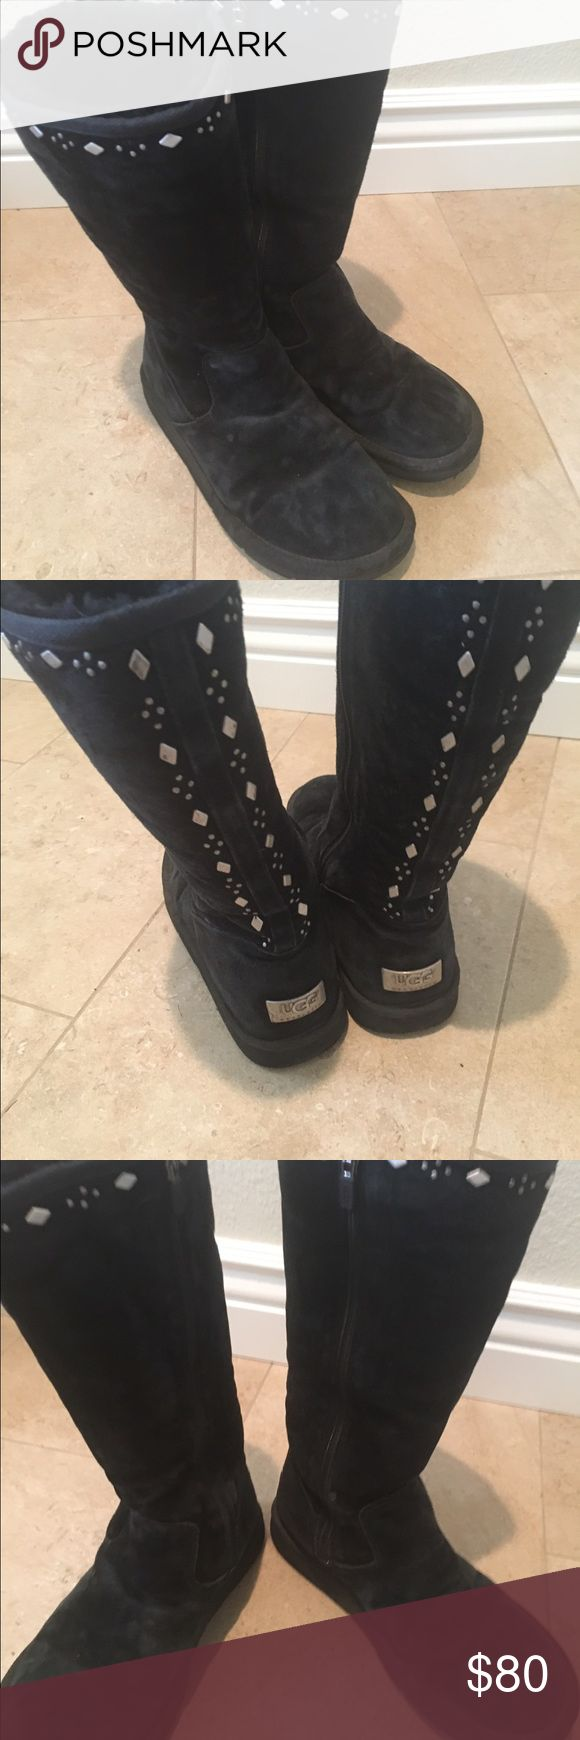 UGG Boots. Excellent condition. Black tall UGG boots with beautiful detail. Excellent condition. Size 9 Shoes Winter & Rain Boots